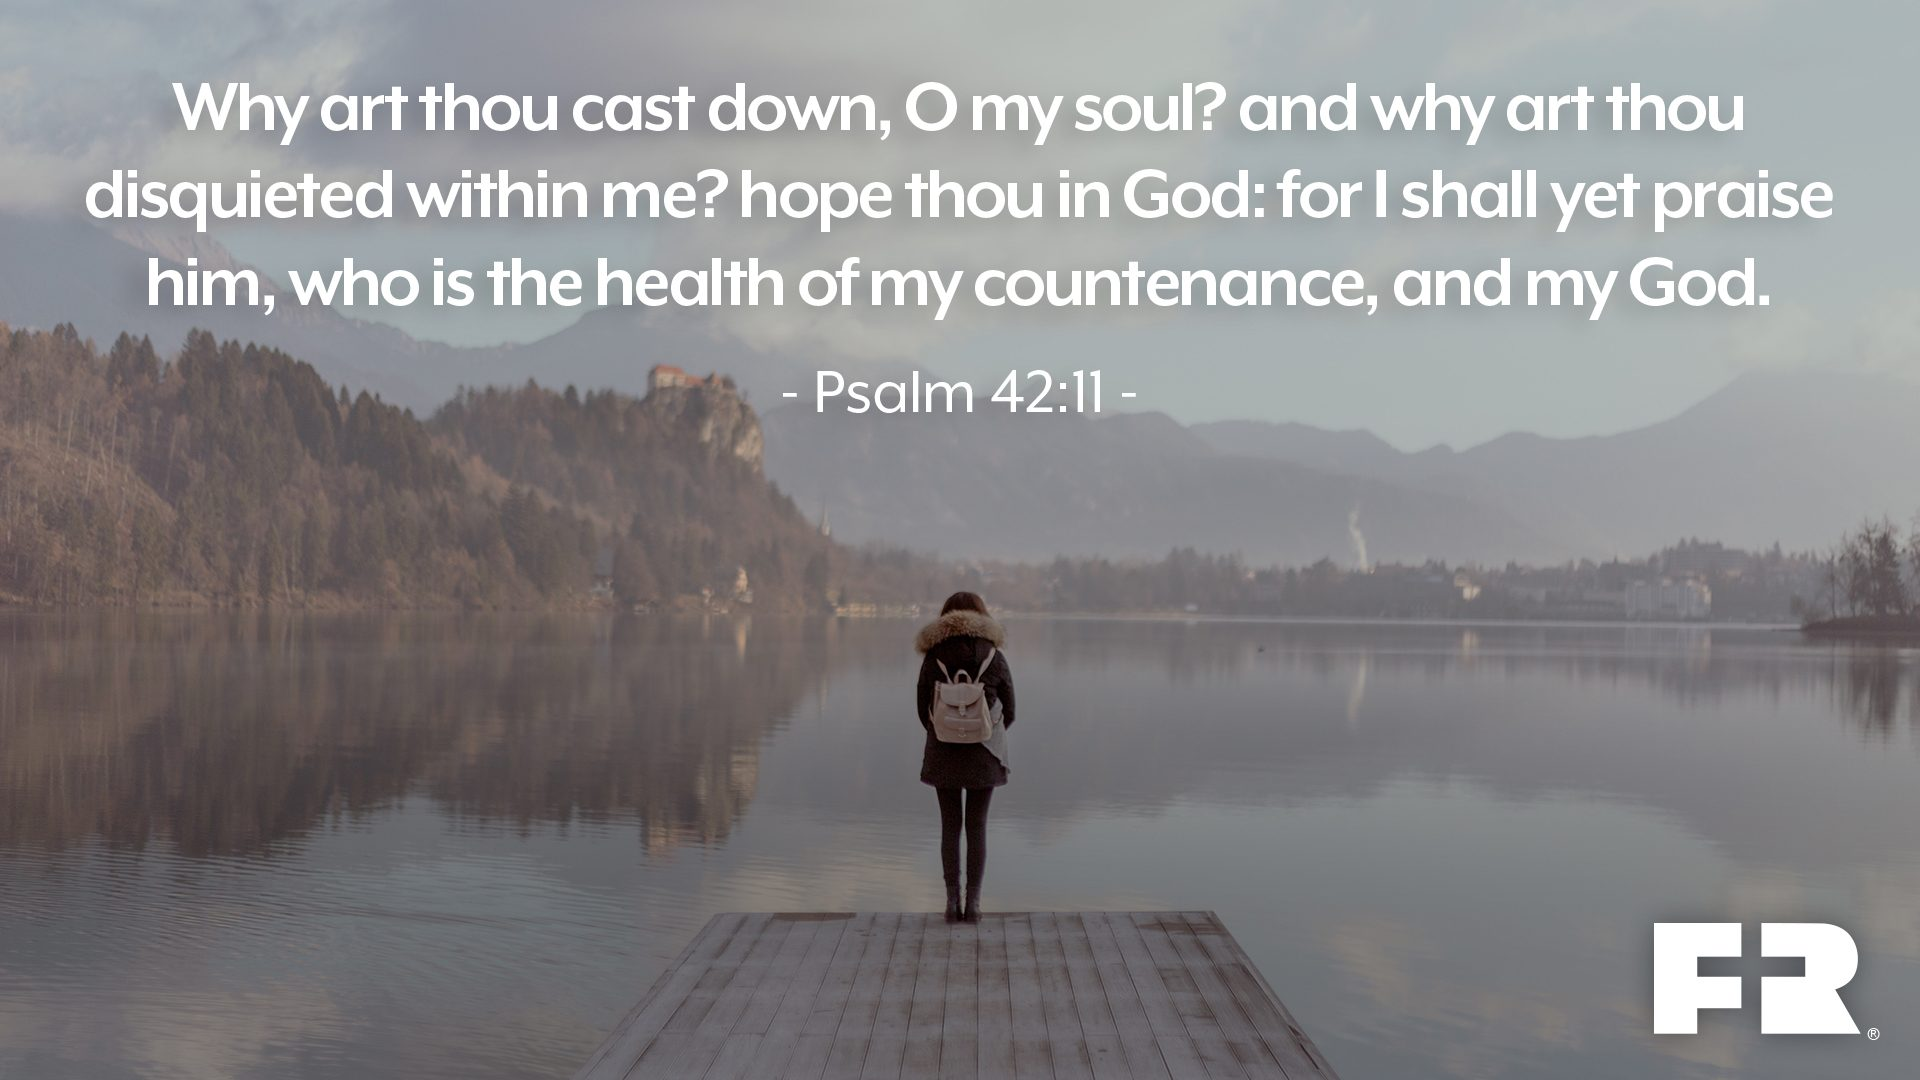 """Why art thou cast down, O my soul? and why art thou disquieted within me? hope thou in God: for I shall yet praise him, who is the health of my countenance, and my God."""